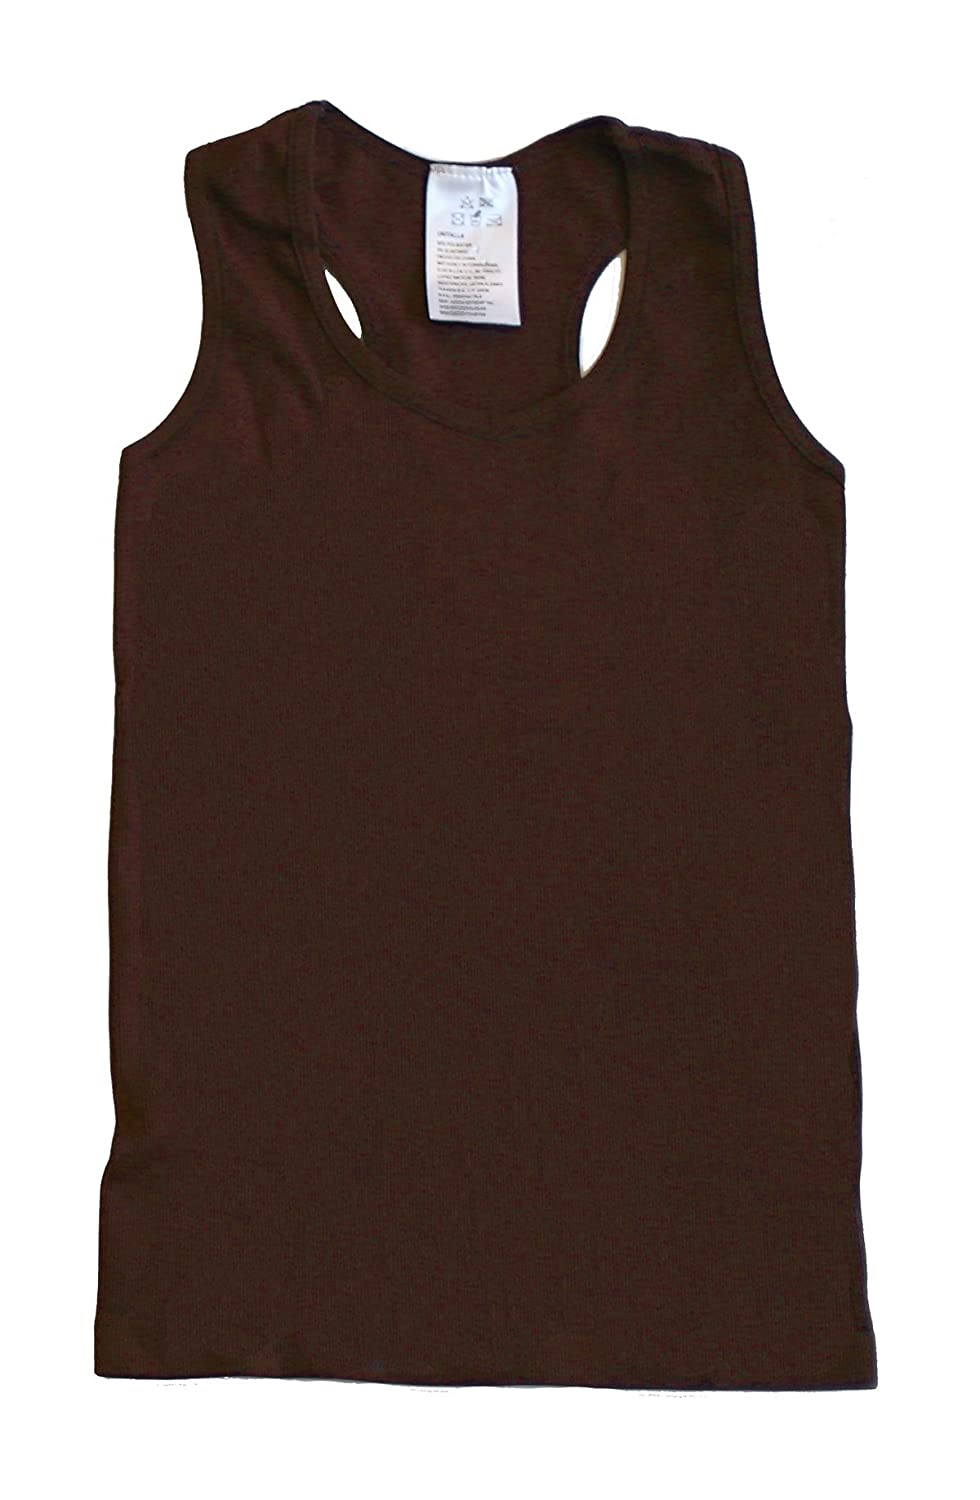 Pout N' Sprout Thick Quality Ribbed Tank Tops 4-8yrs Brown KBrnTanks2762